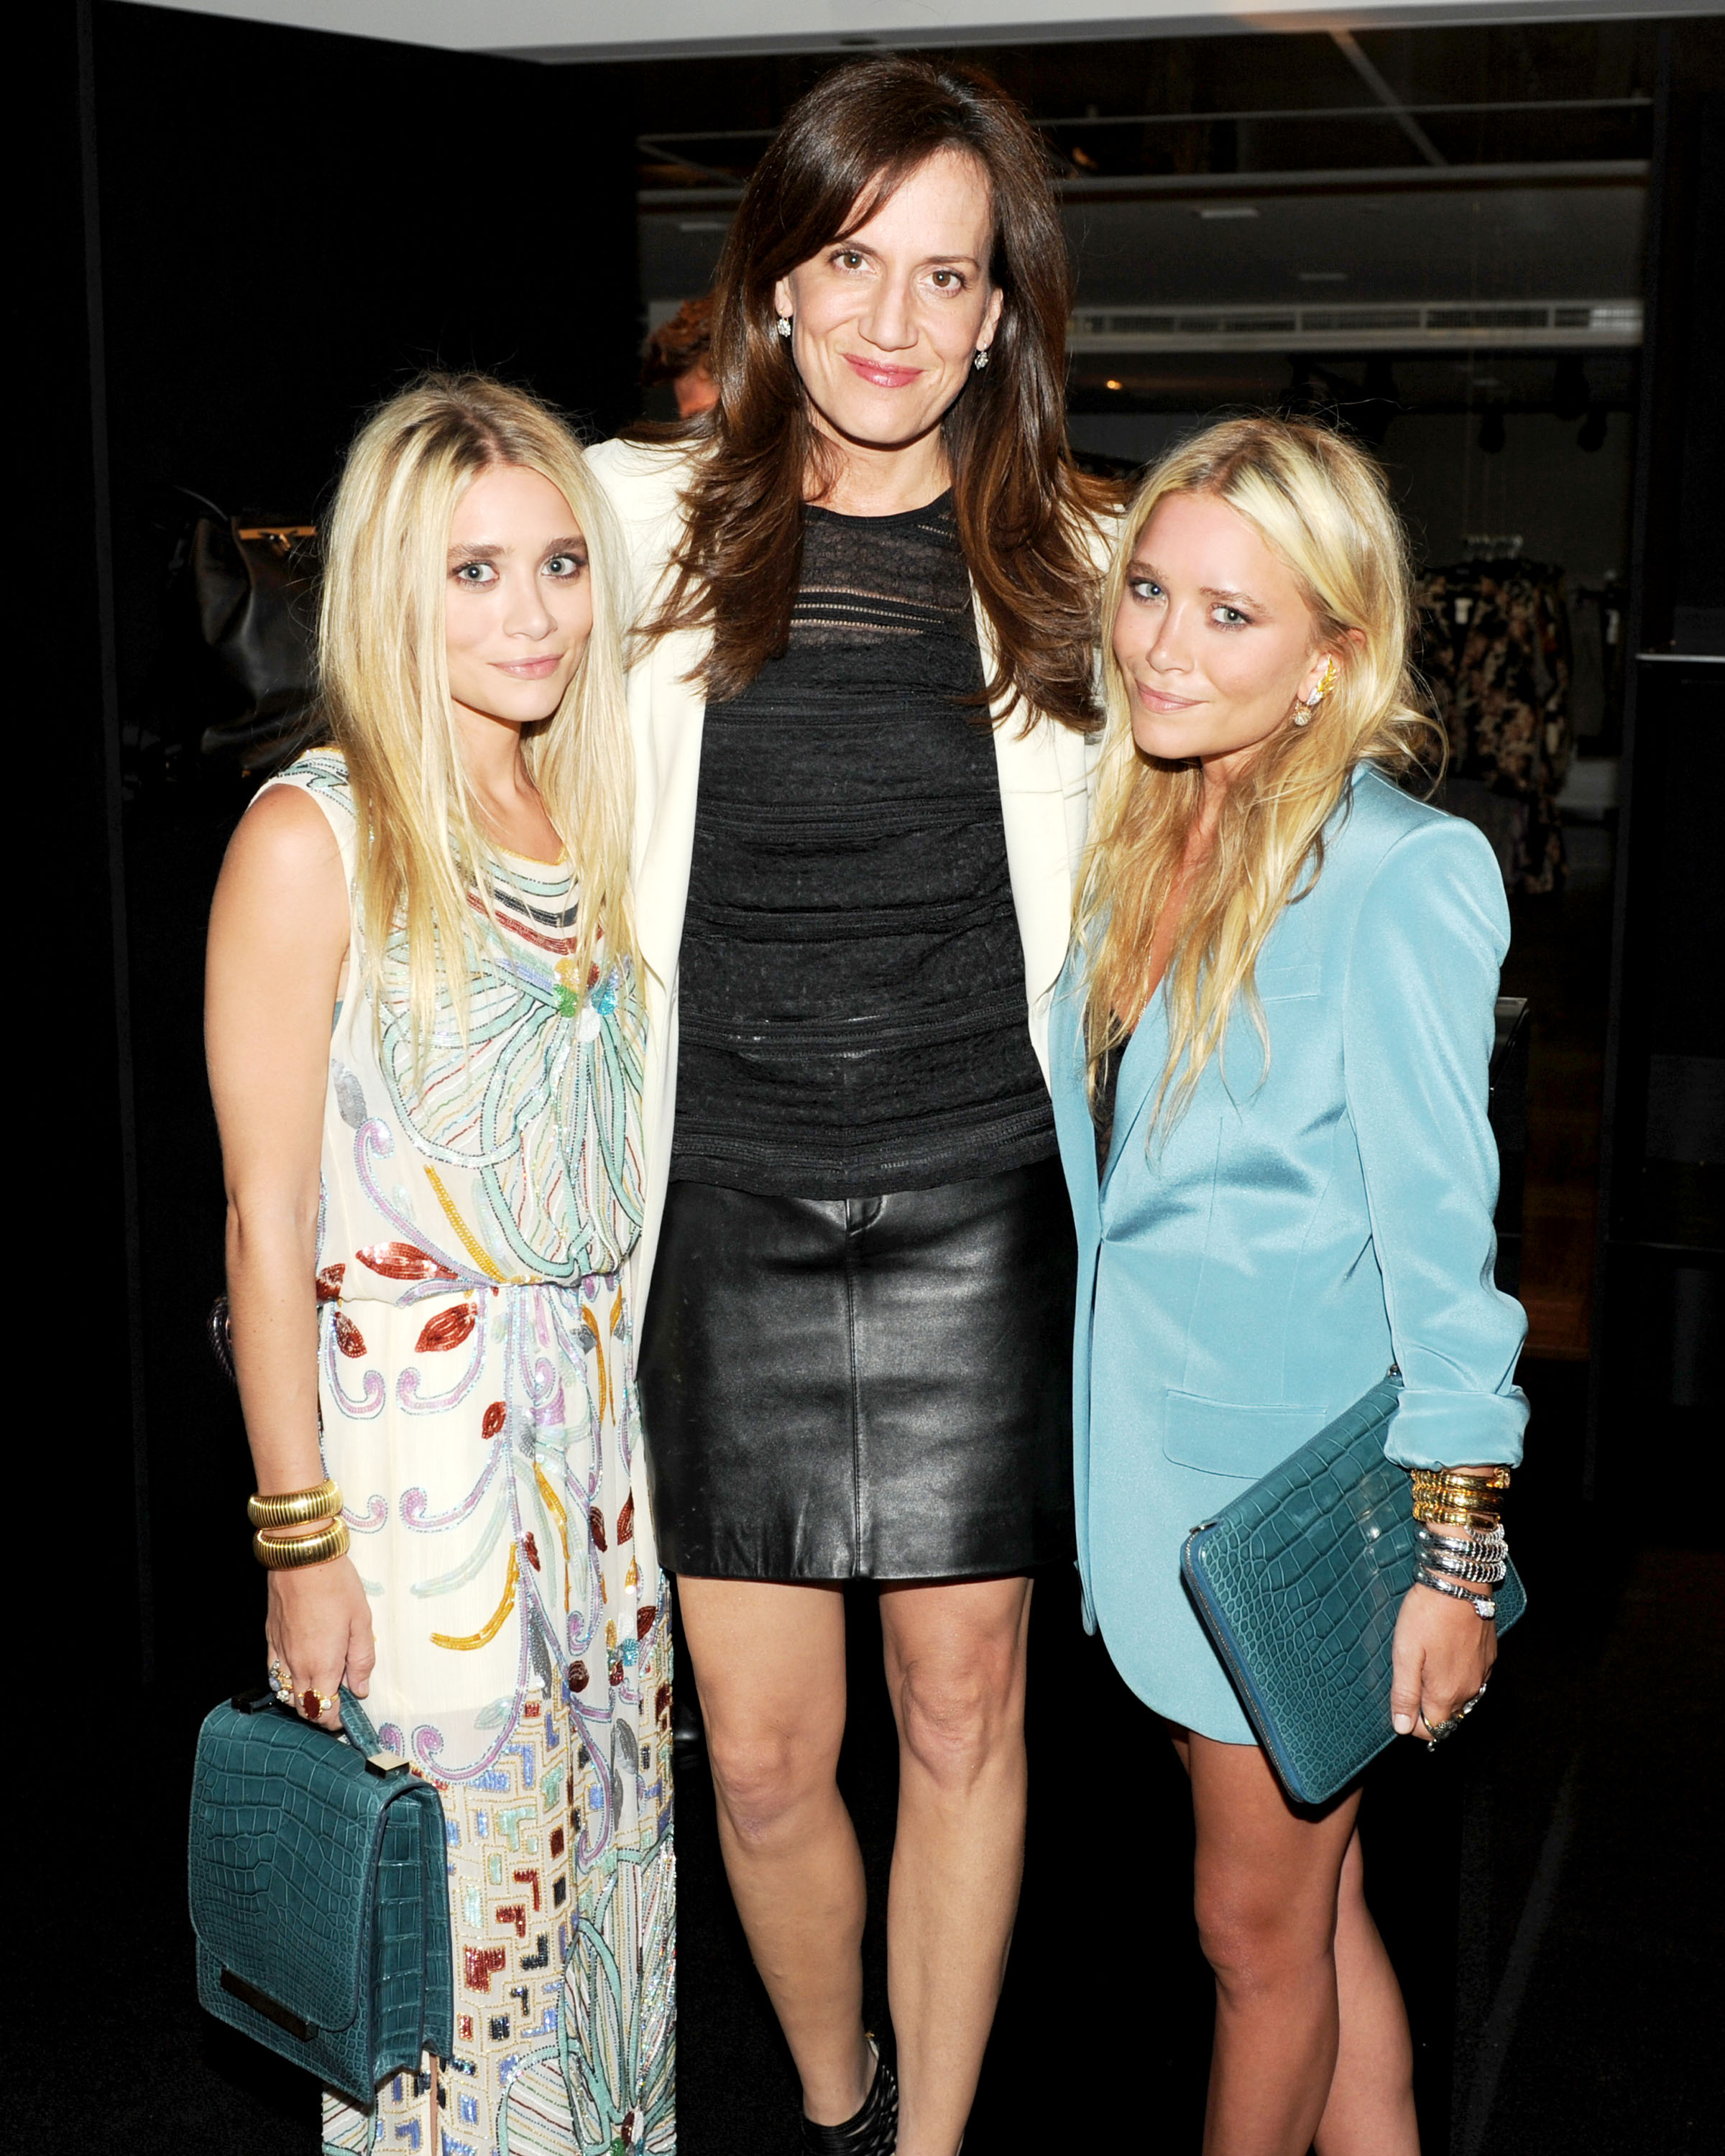 Ashley Olsen, Daniella Vitale, and Mary-Kate Olsen at The Row's handbag launch.